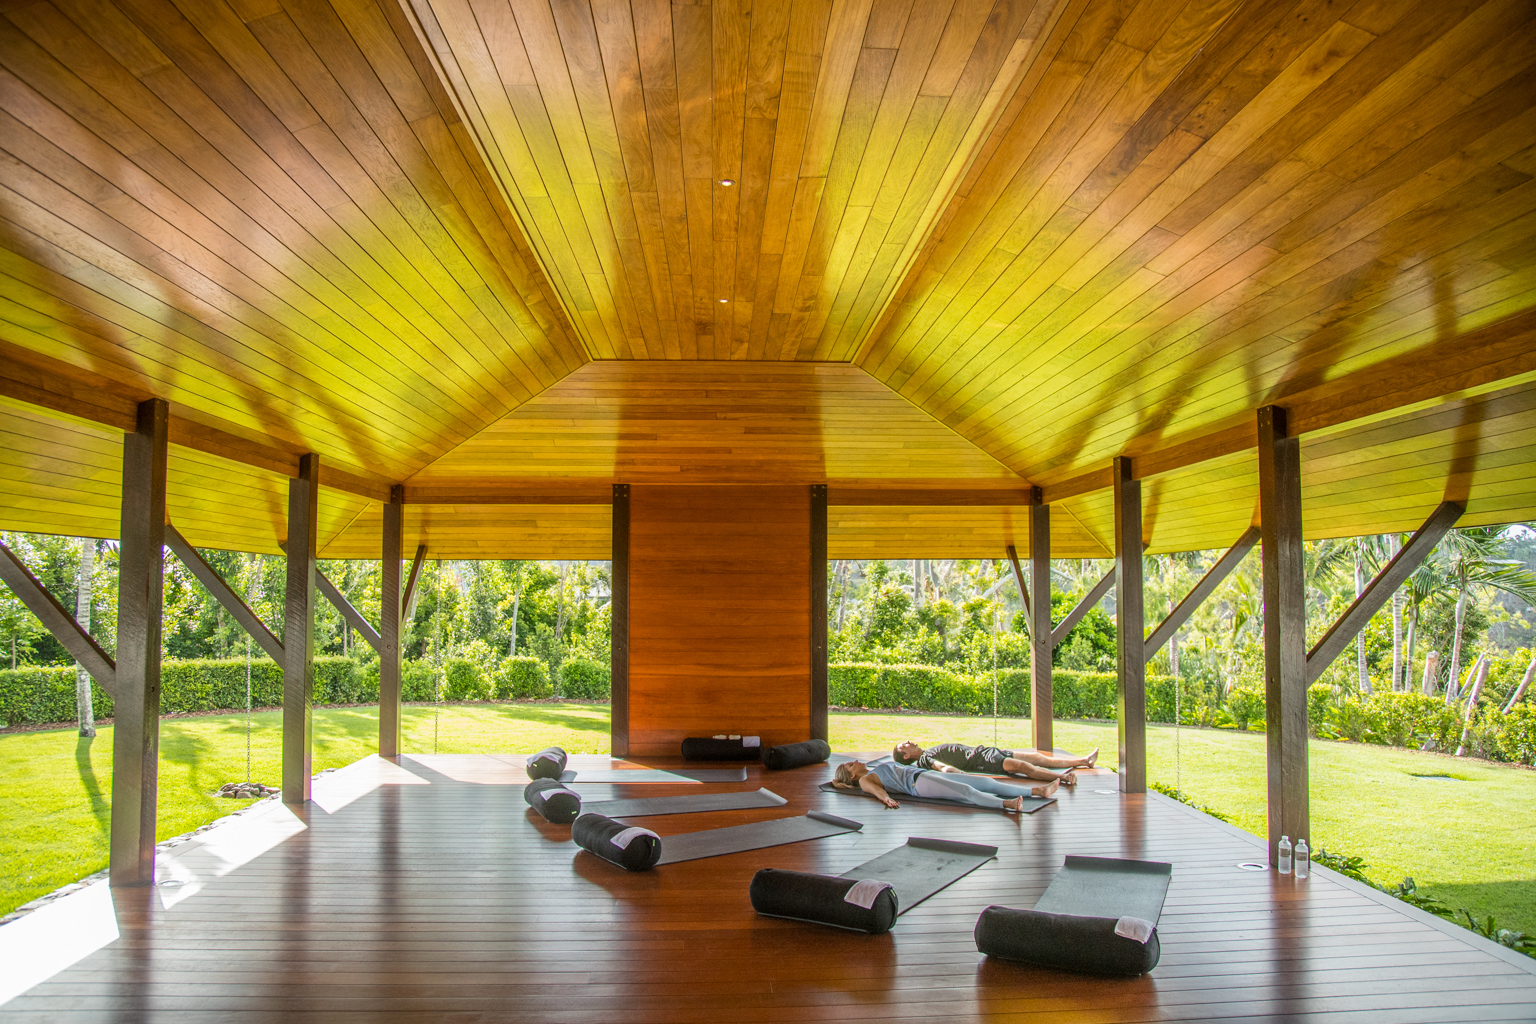 Fitness On Toast Faya Blog Girl Healthy Workout Training Active Escape Travel Australia Hamilton Island Qualia Resort Luxury Health Trip-8